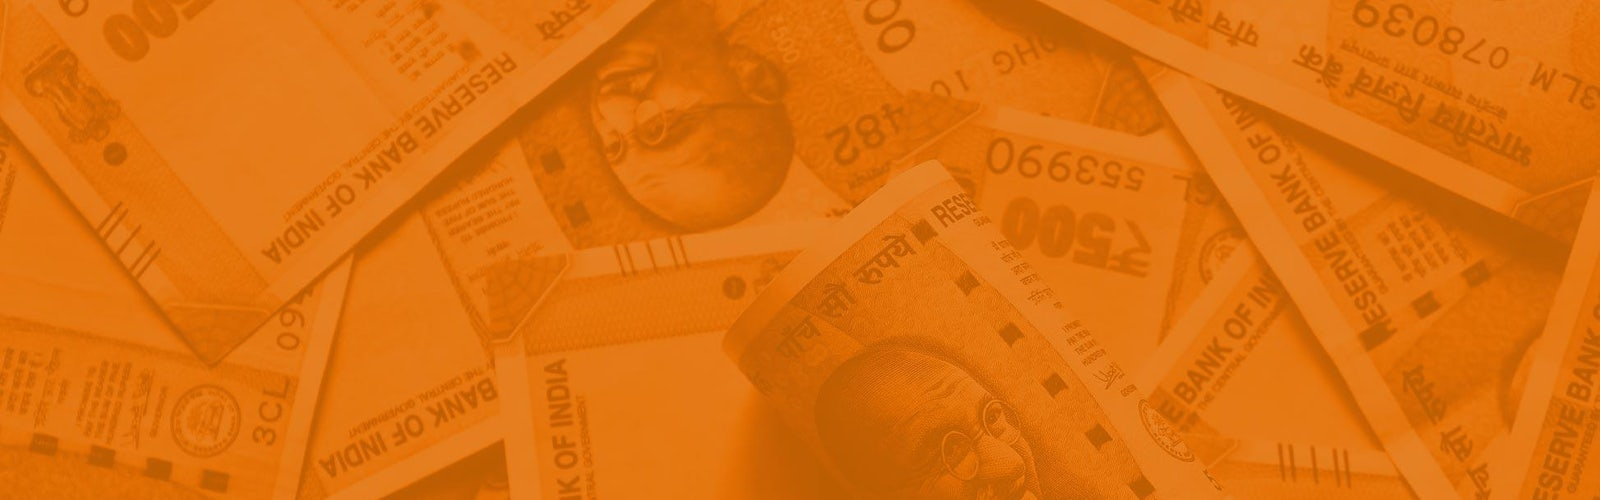 India welcome bonus header image